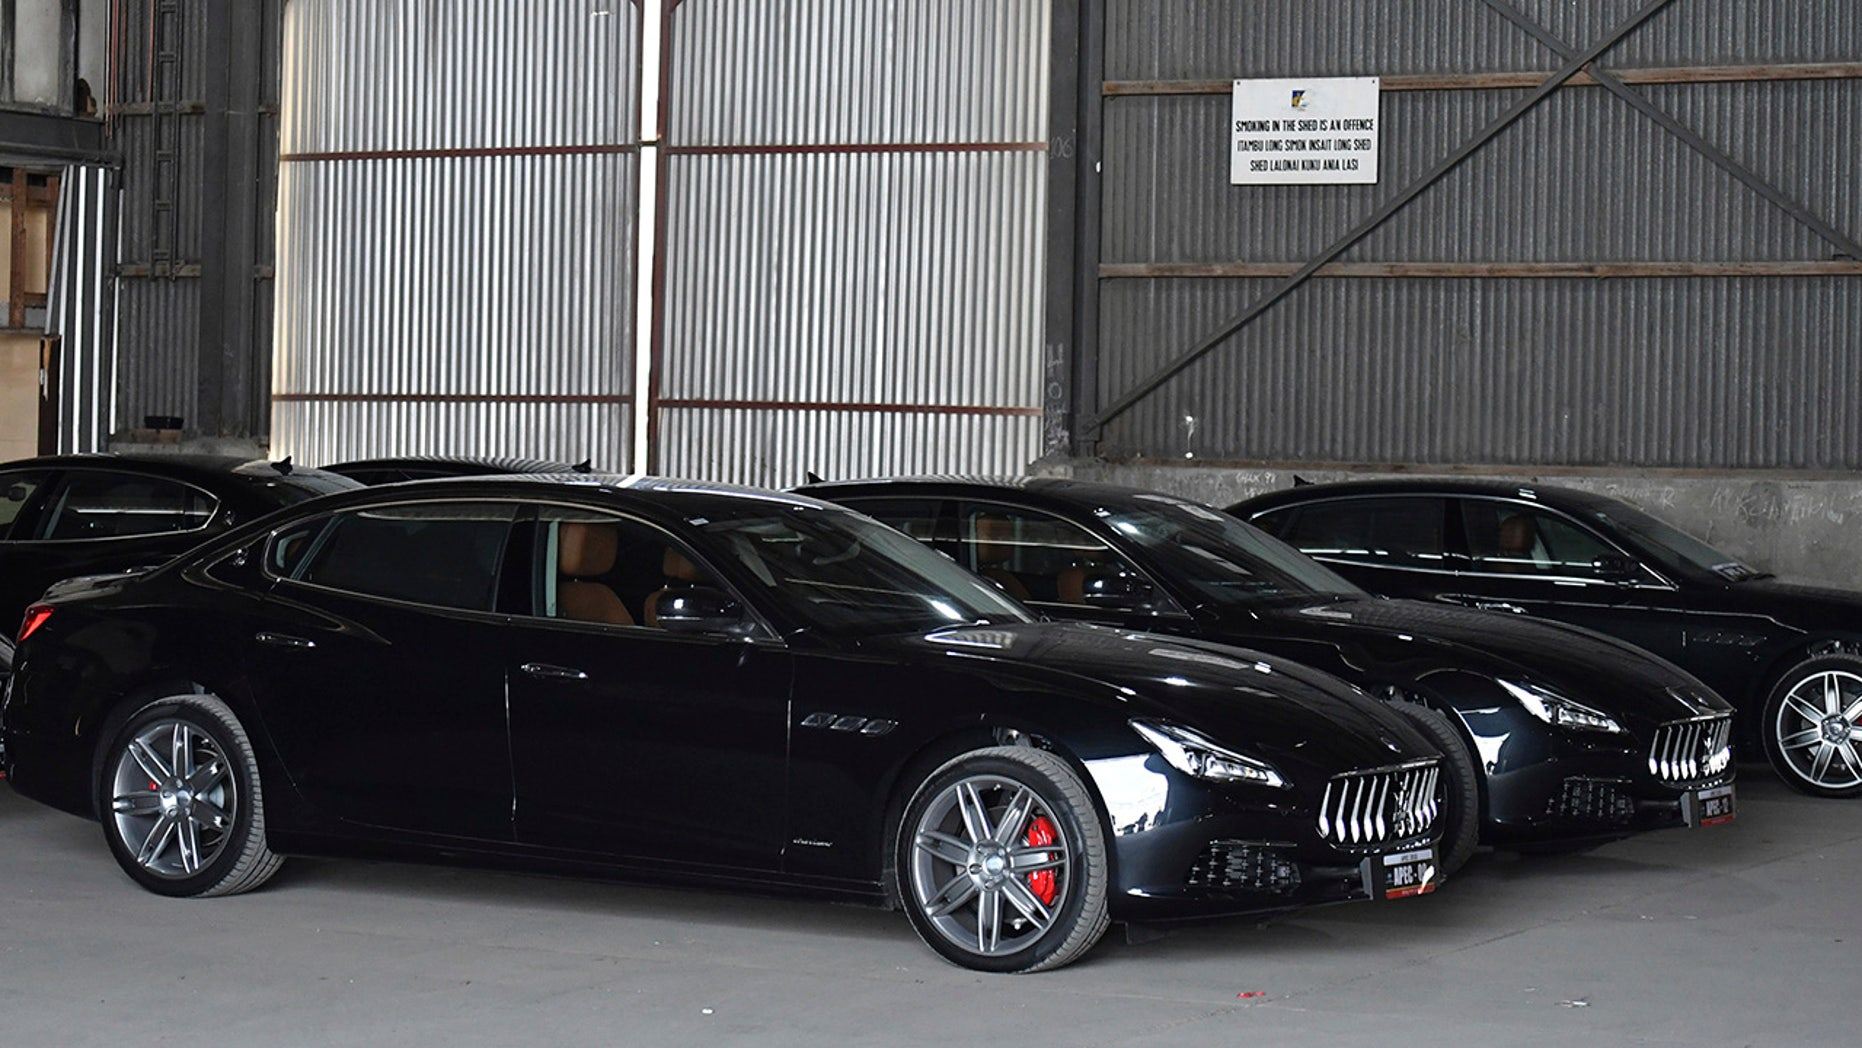 High End Cars >> Papua New Guinea Searching For 275 High End Cars Lost After Apec